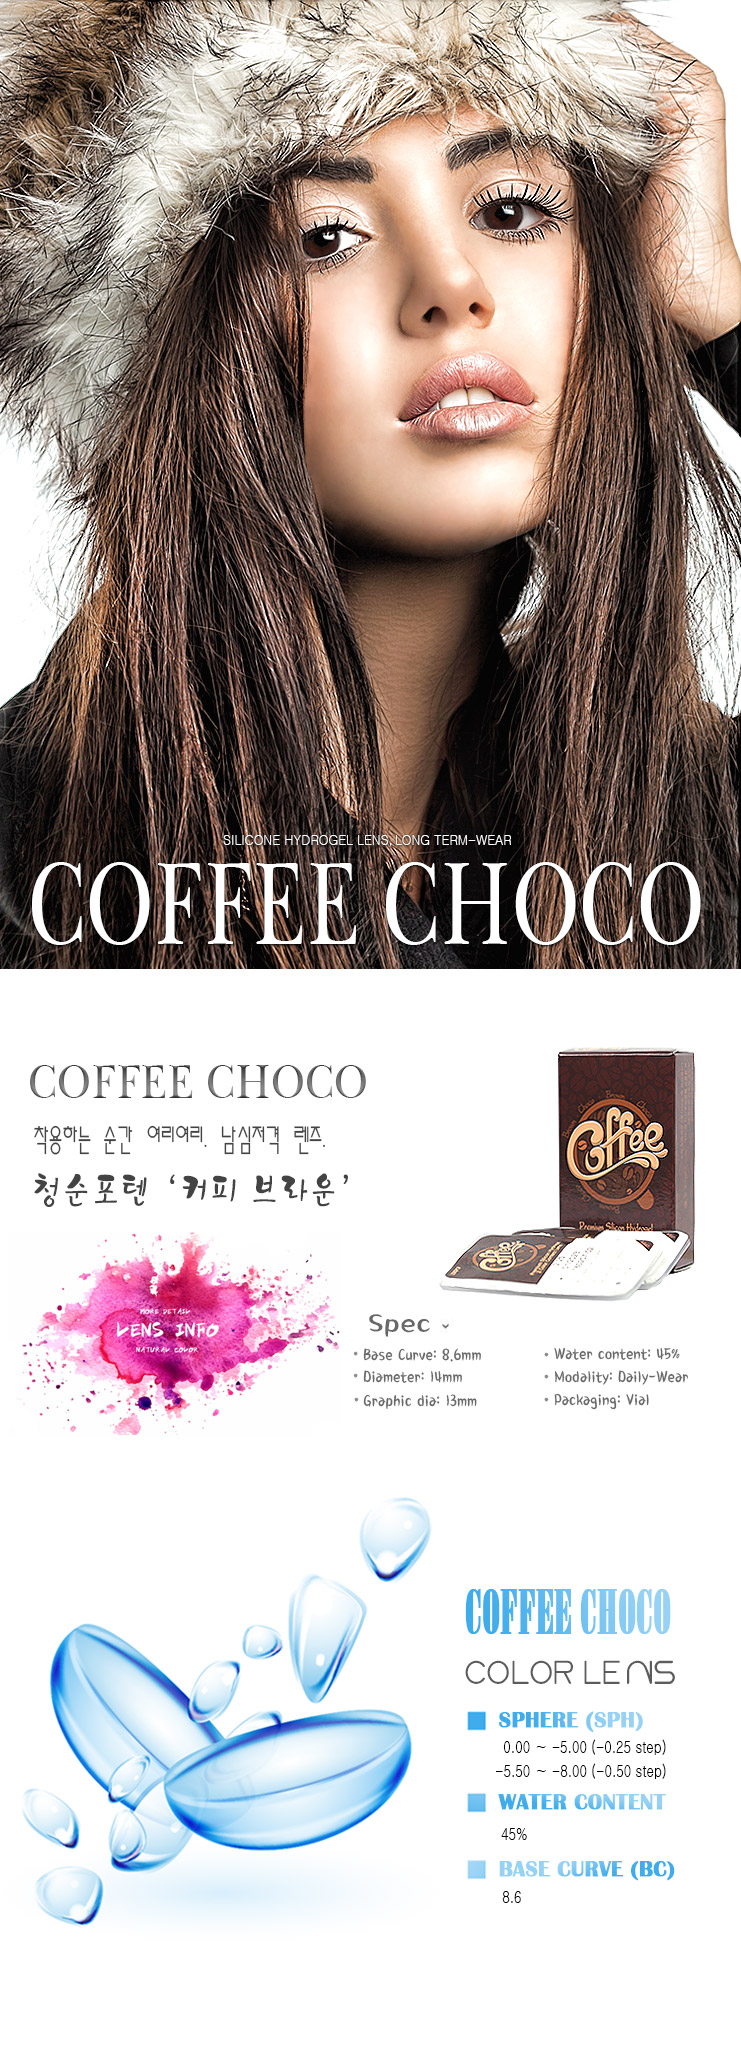 buy-coffee-choco-colored-eye-contacts-klenspop.jpg